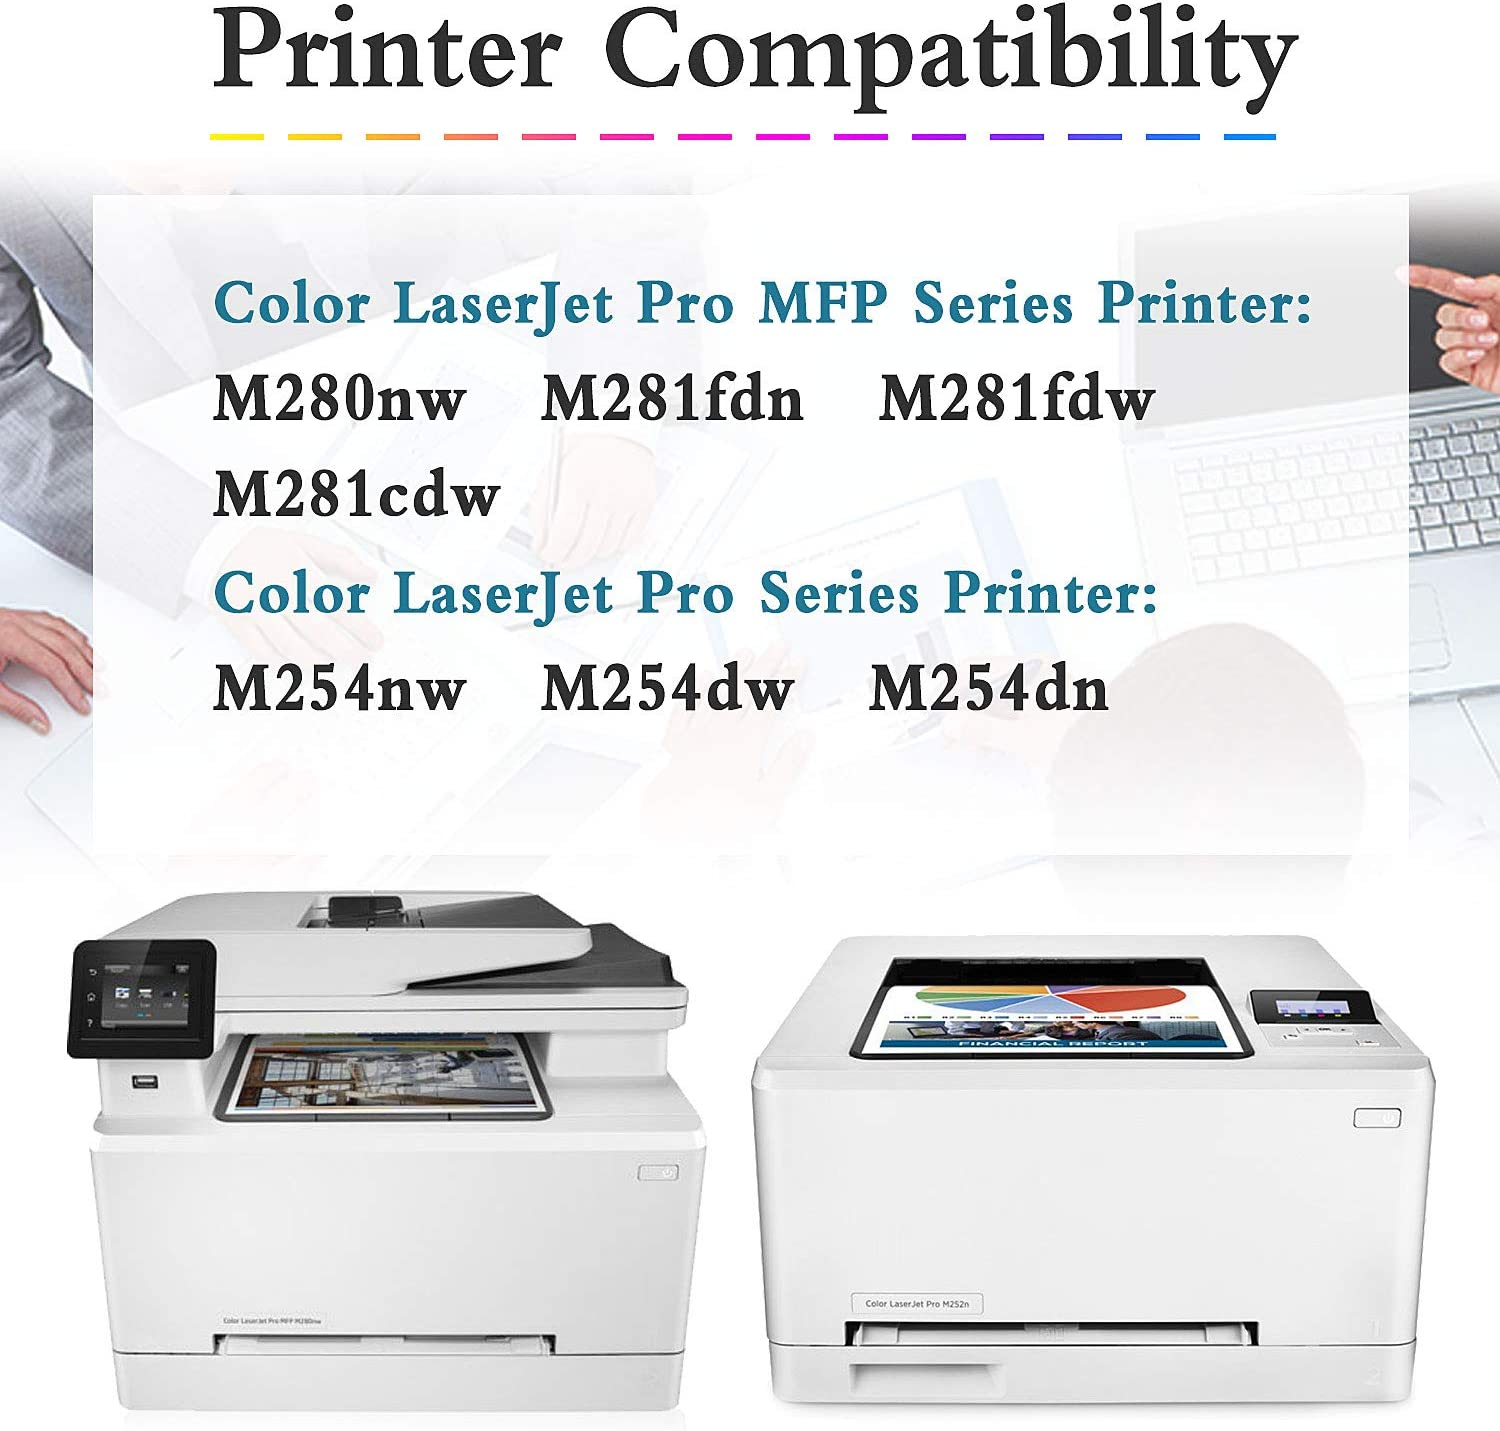 M280nw M281fdn M281fdw M281cdw M254nw M254dw M254dn Printer Toner Cartridge Replacement for HP 202A CF500A Toner Cartridge 2 Pack Black Sold by TmallToner